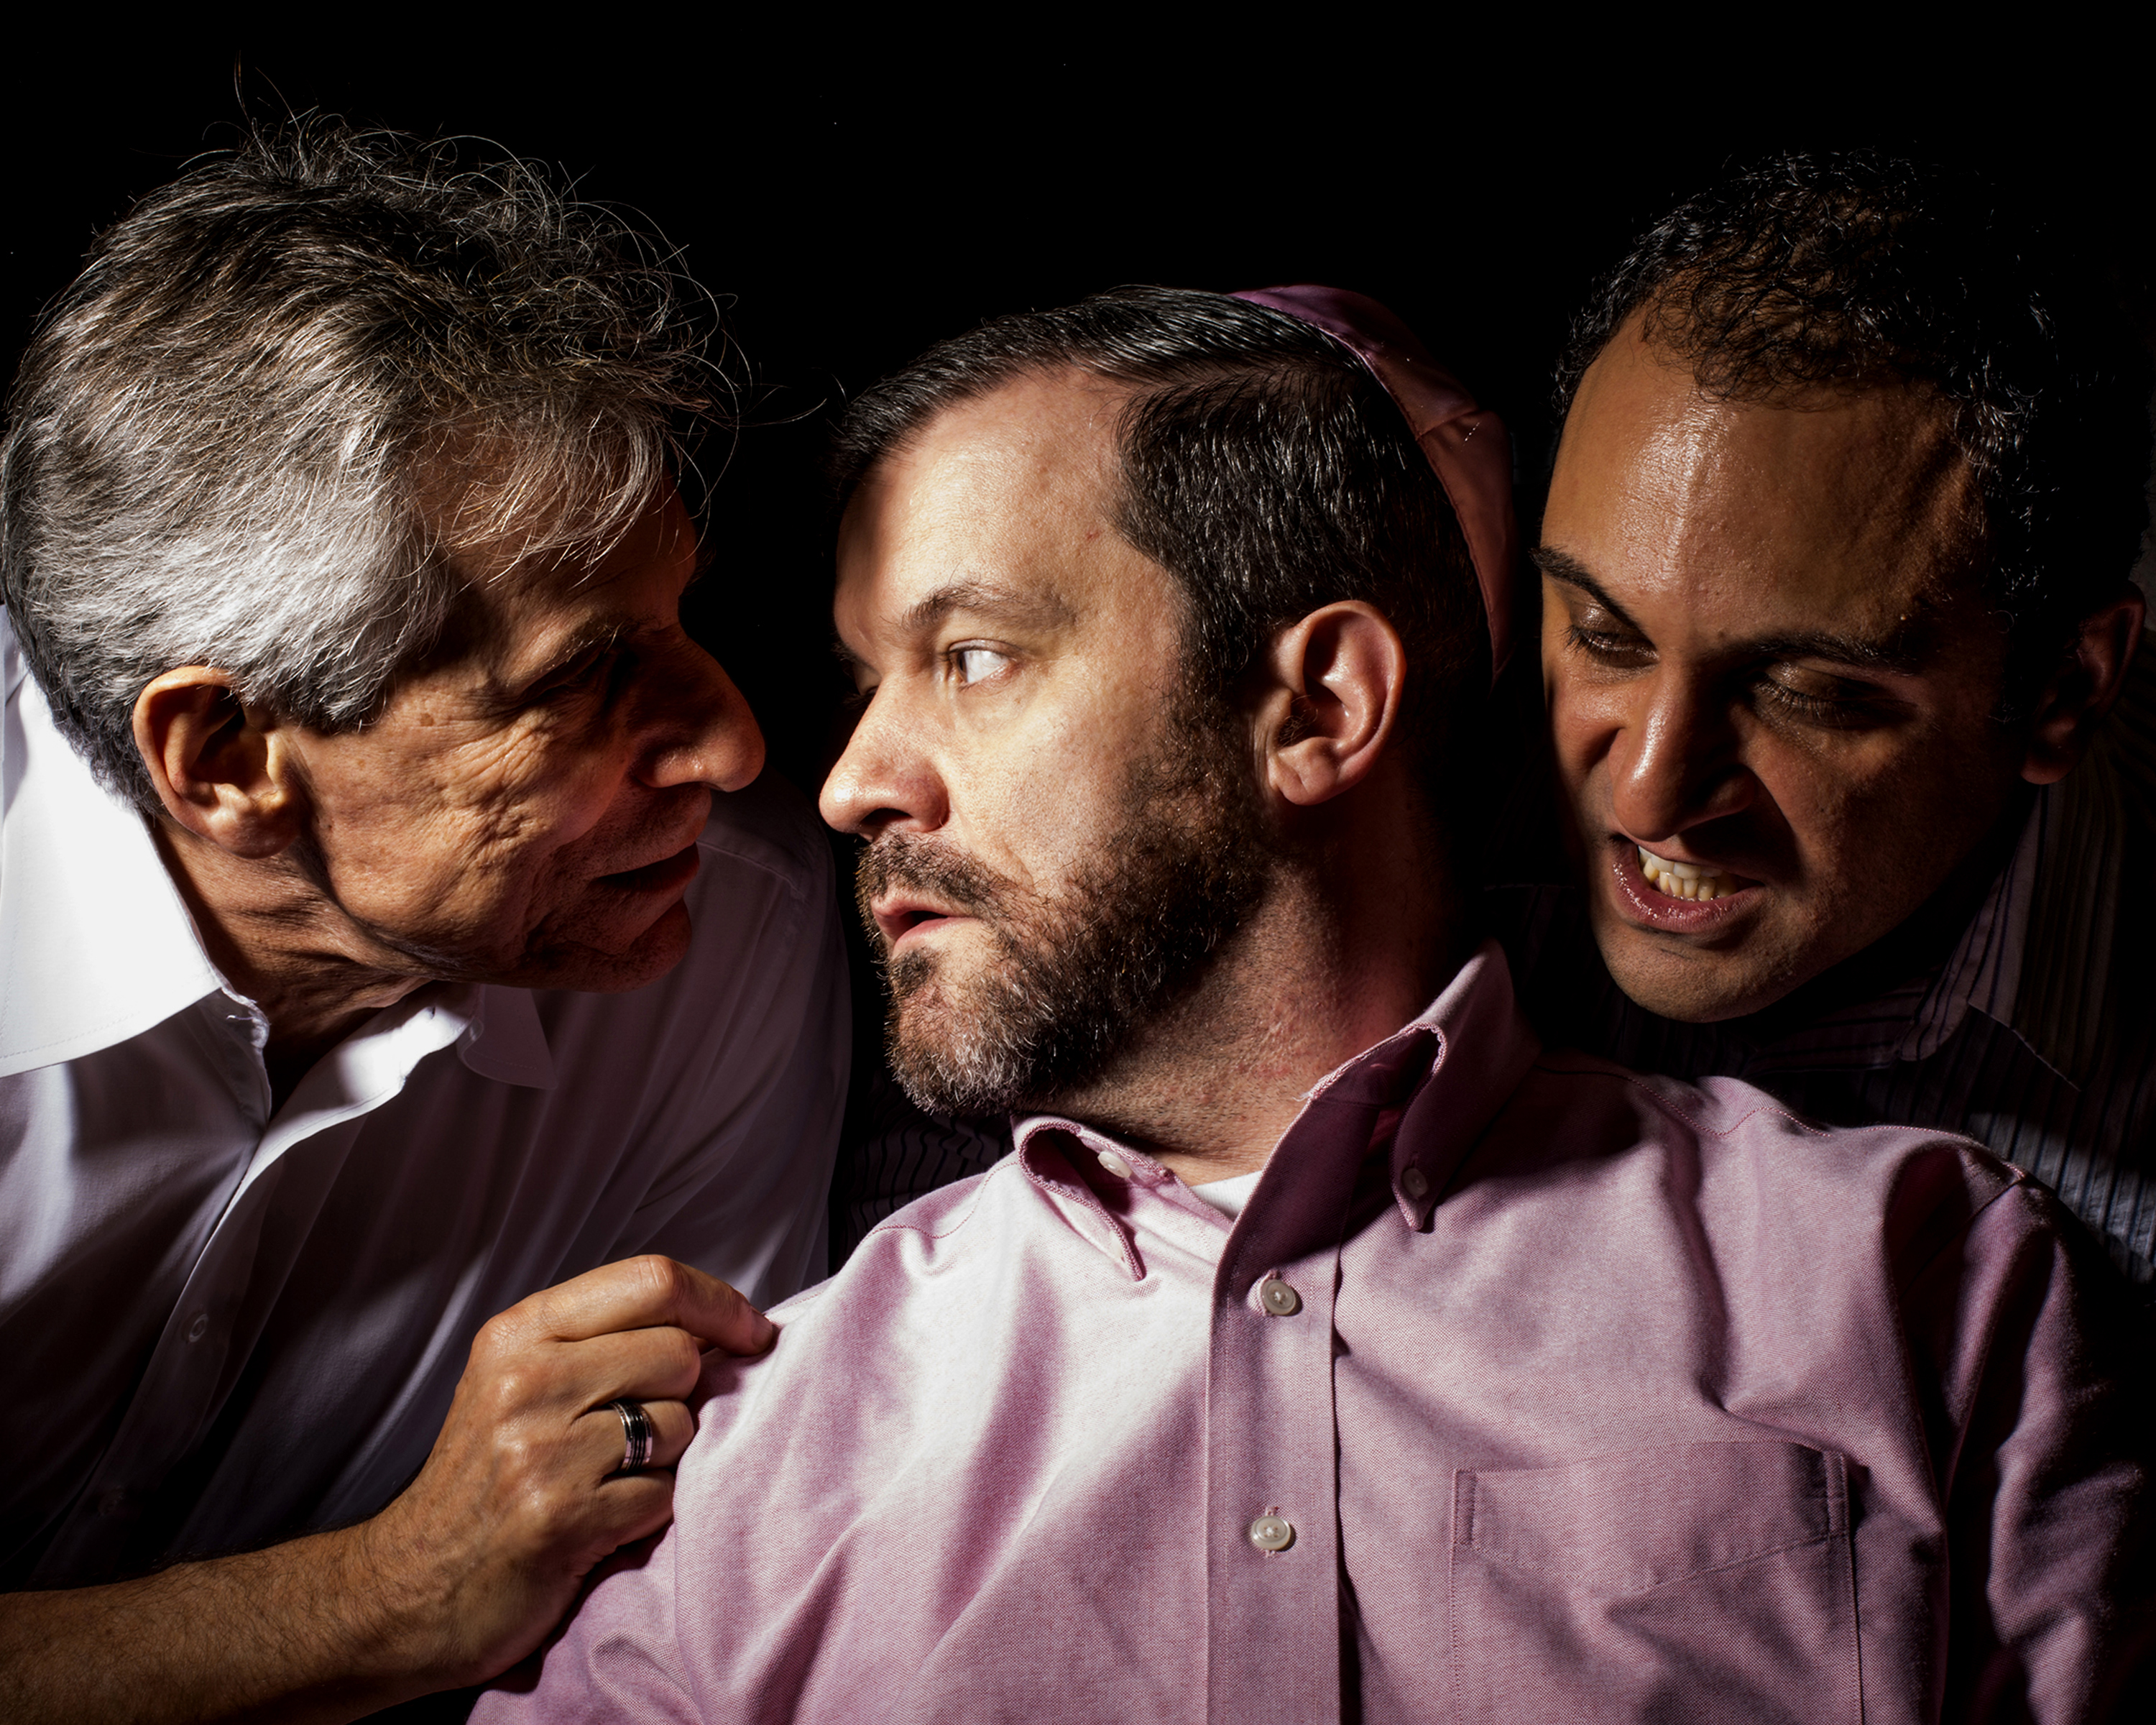 Actors (L to R) are Jerry Wasserman, James Gill and Mehdi Darvish - Photographer Doug Williams